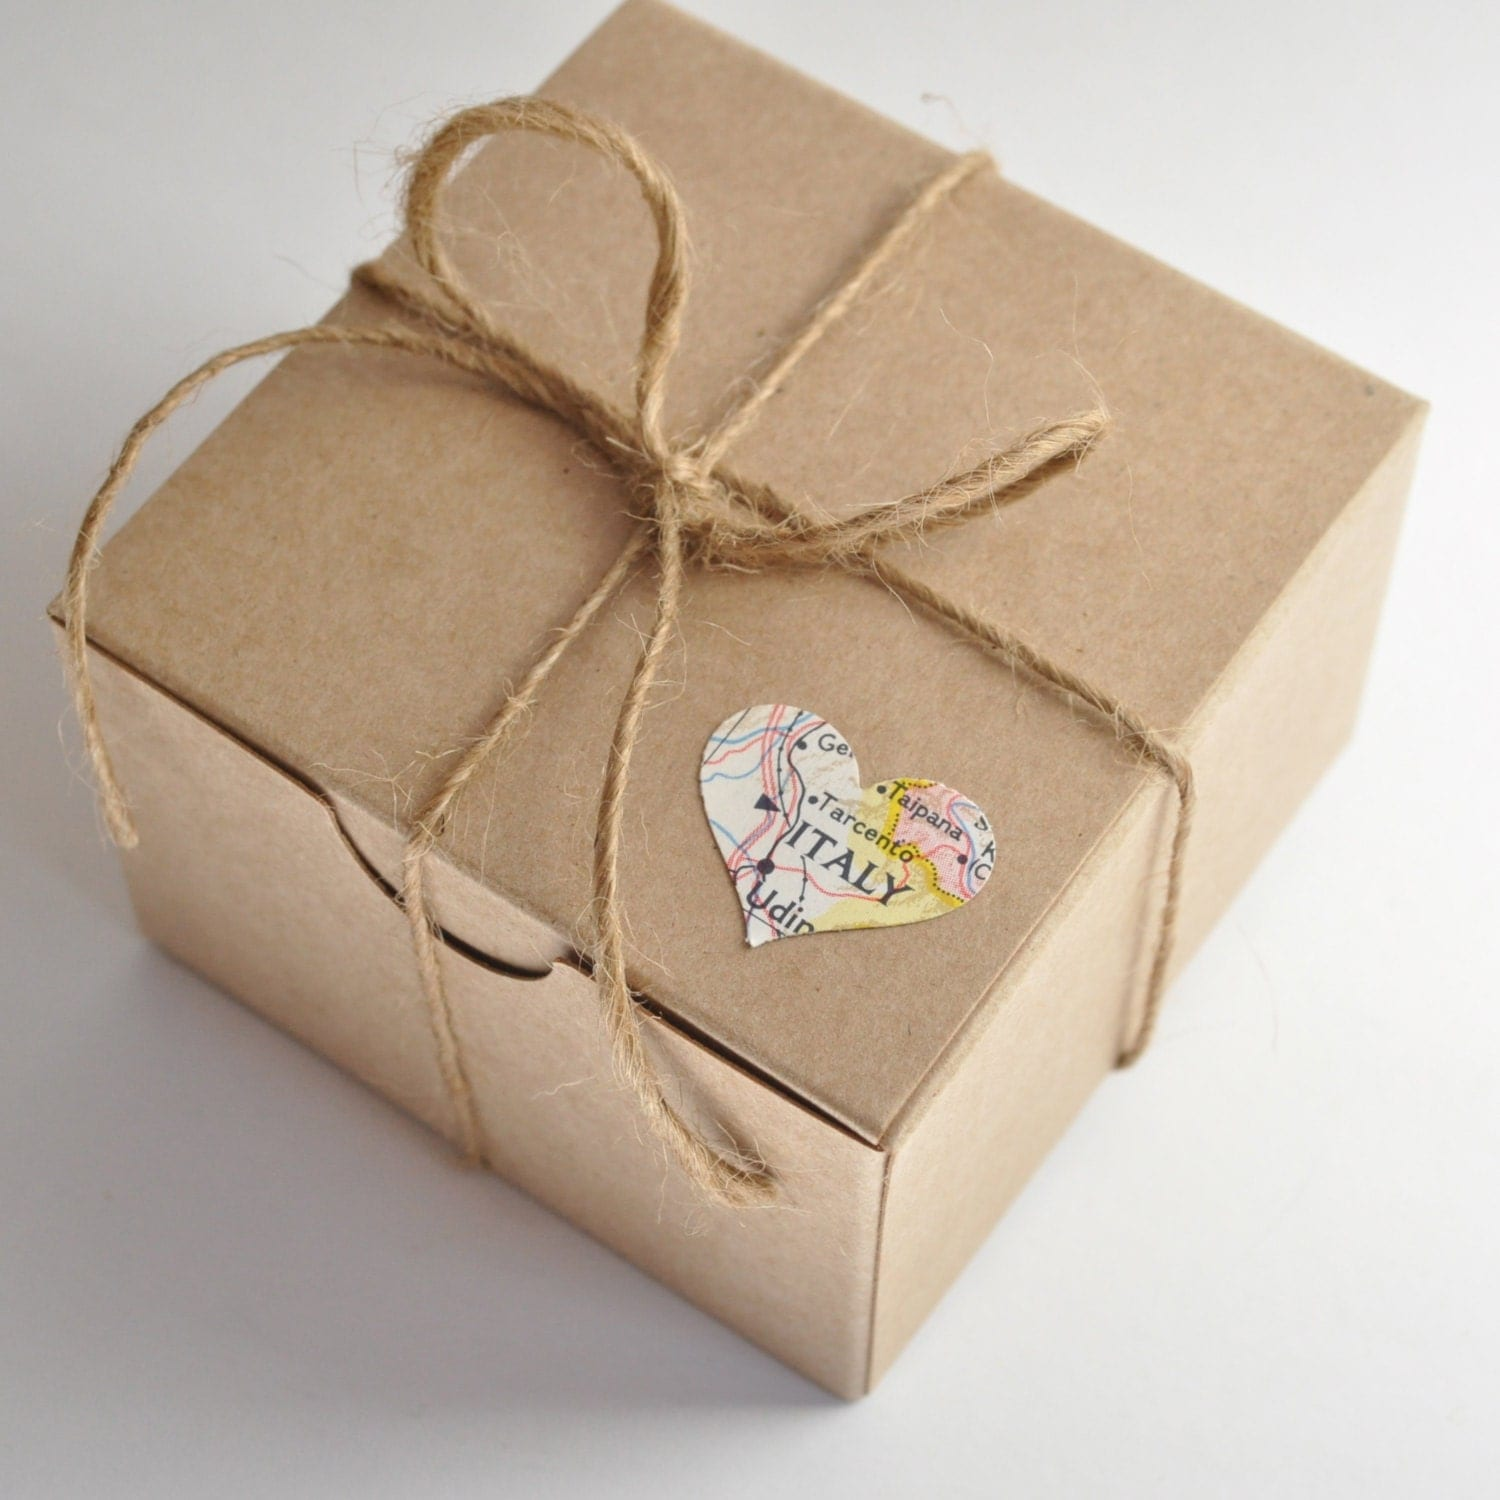 Small Gift For Wedding: Wedding Favor Boxes Kraft Favor Box Candy Box Small Favor